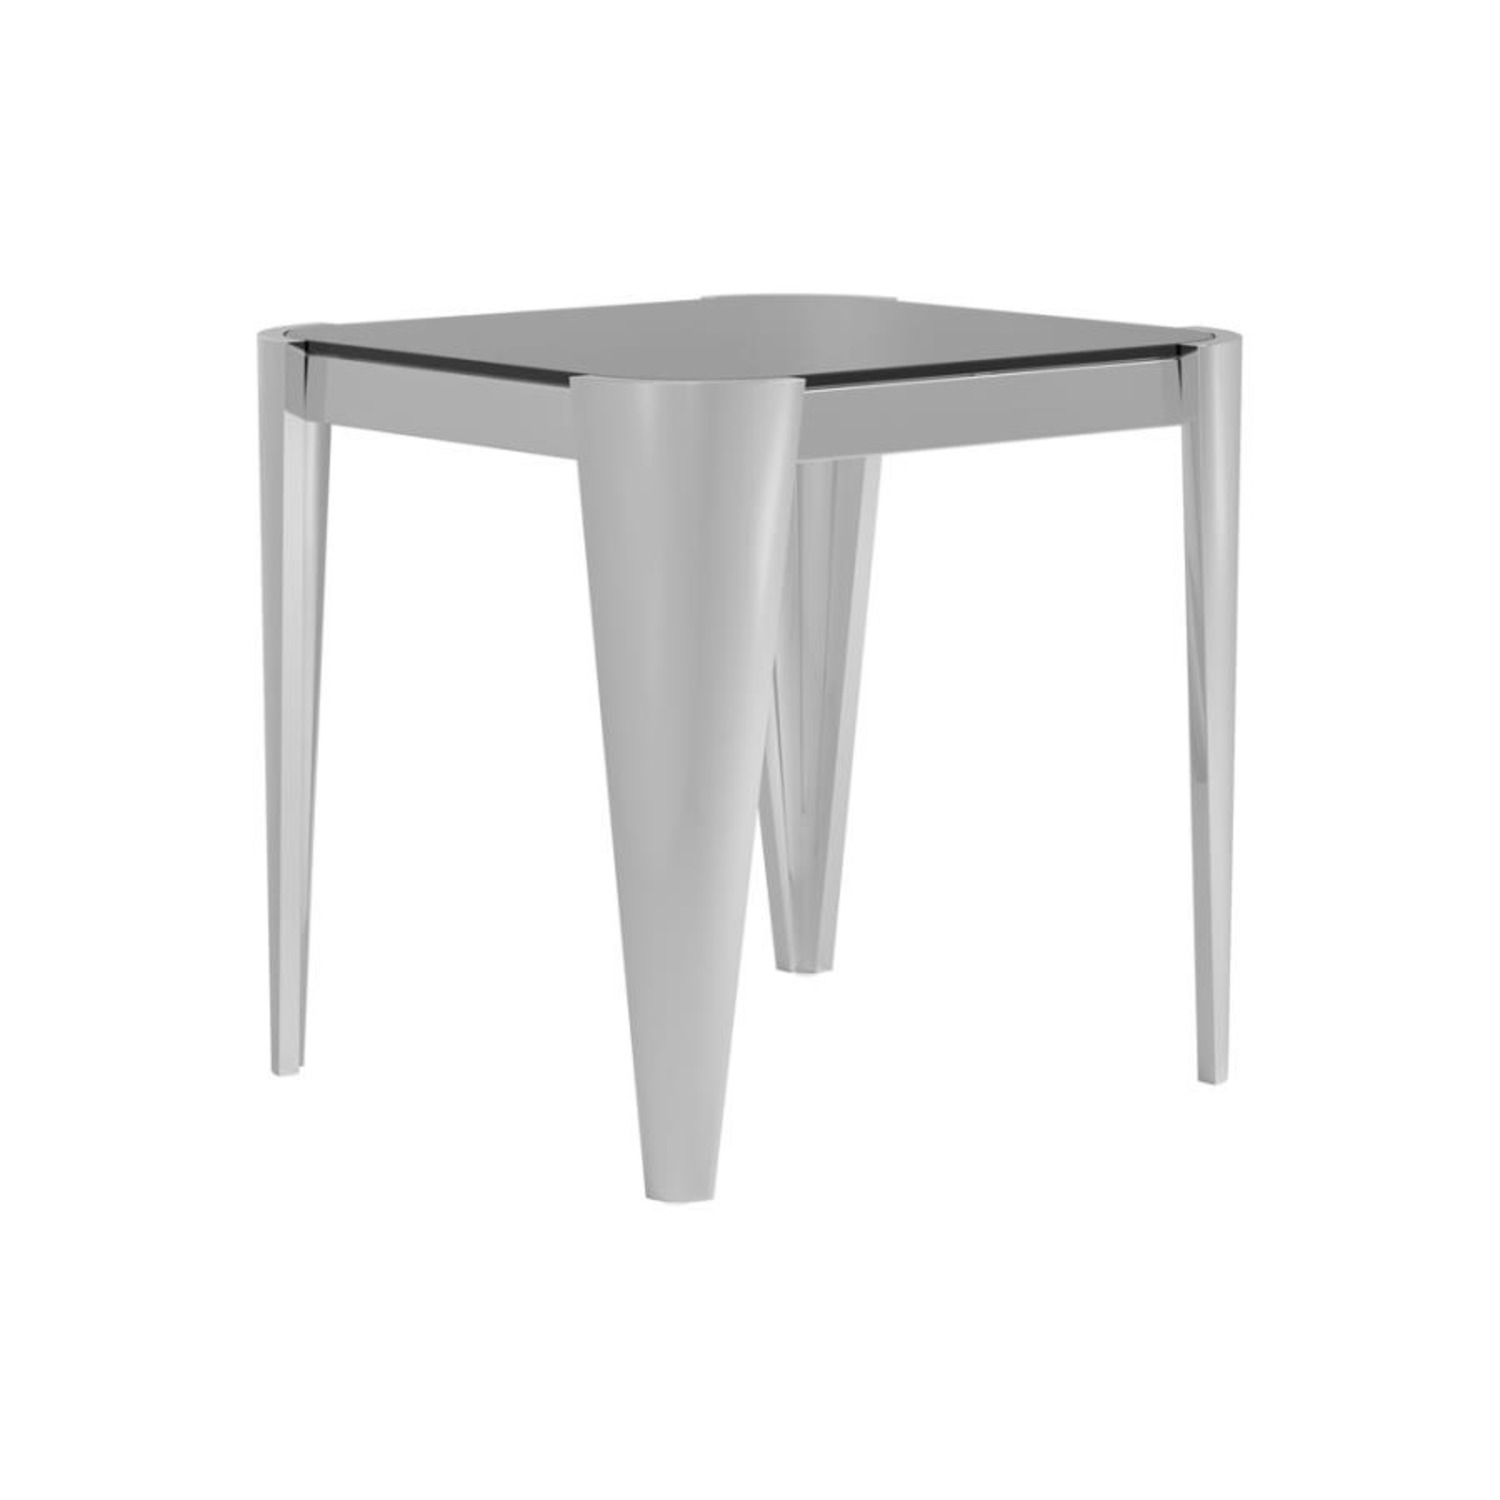 End Table In Silver W/ Grey Tempered Glass Top - image-1